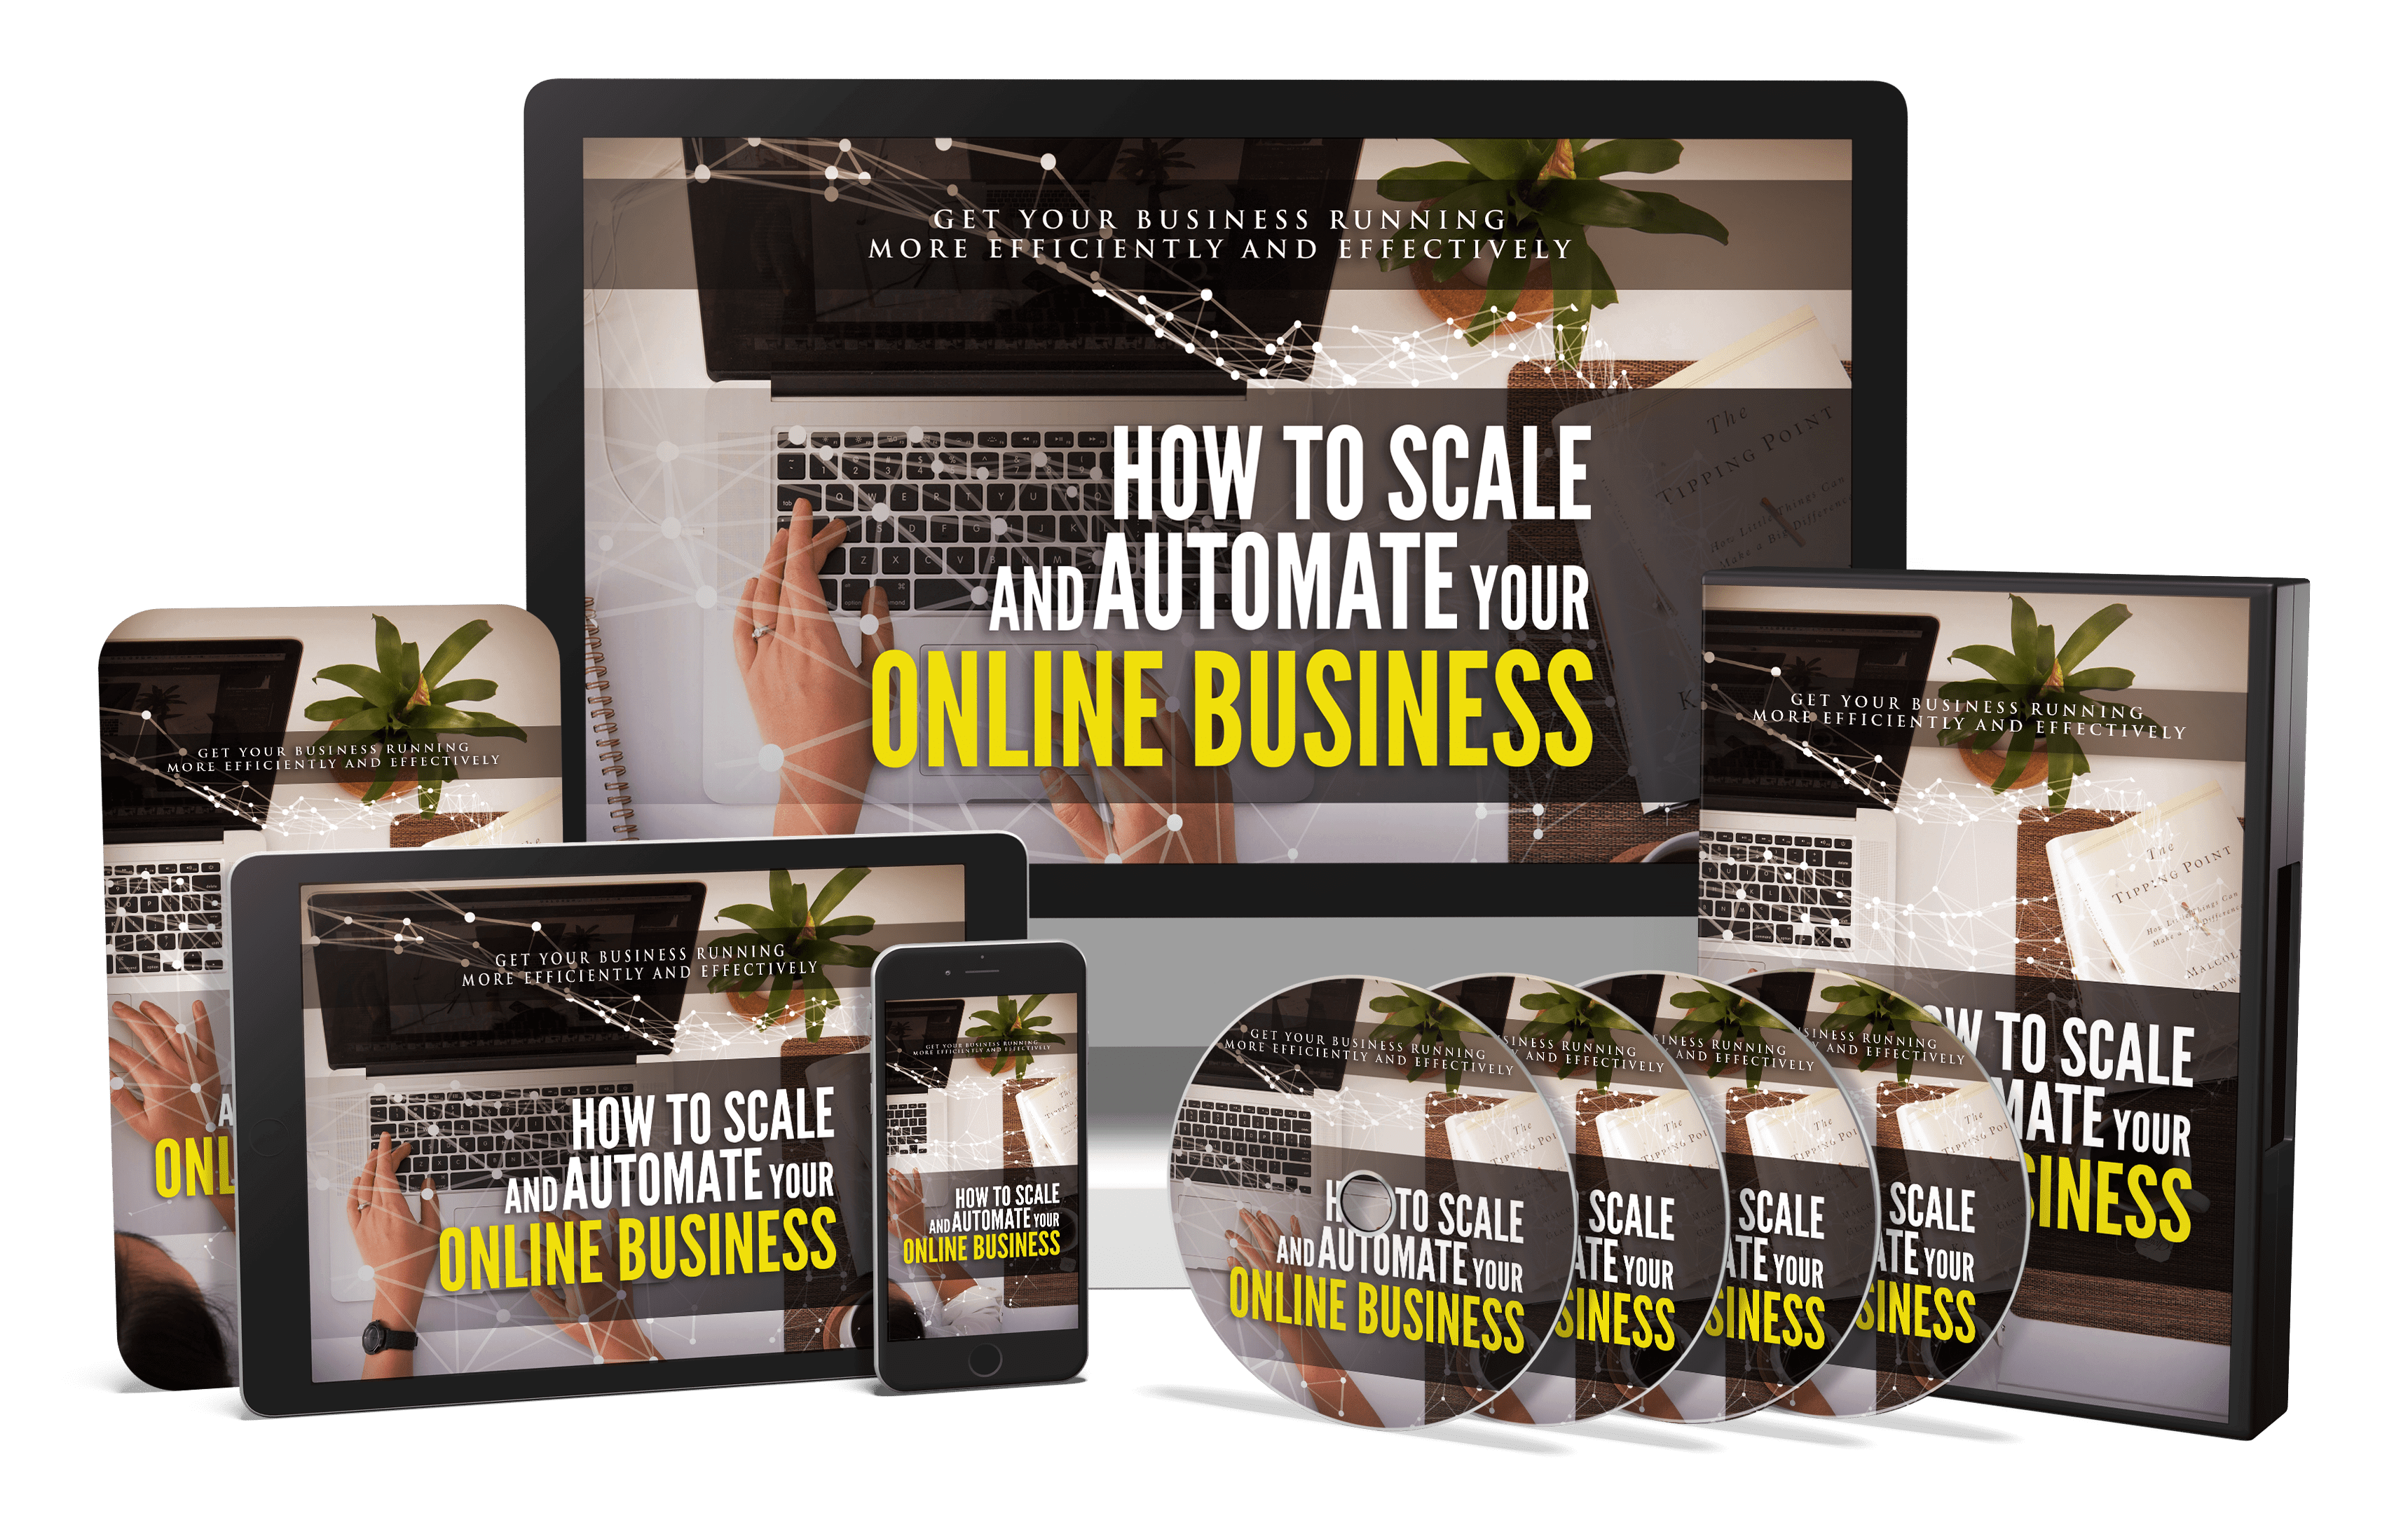 How-To-Scale-And-Automate-Your-Online-Business-PLR-Review